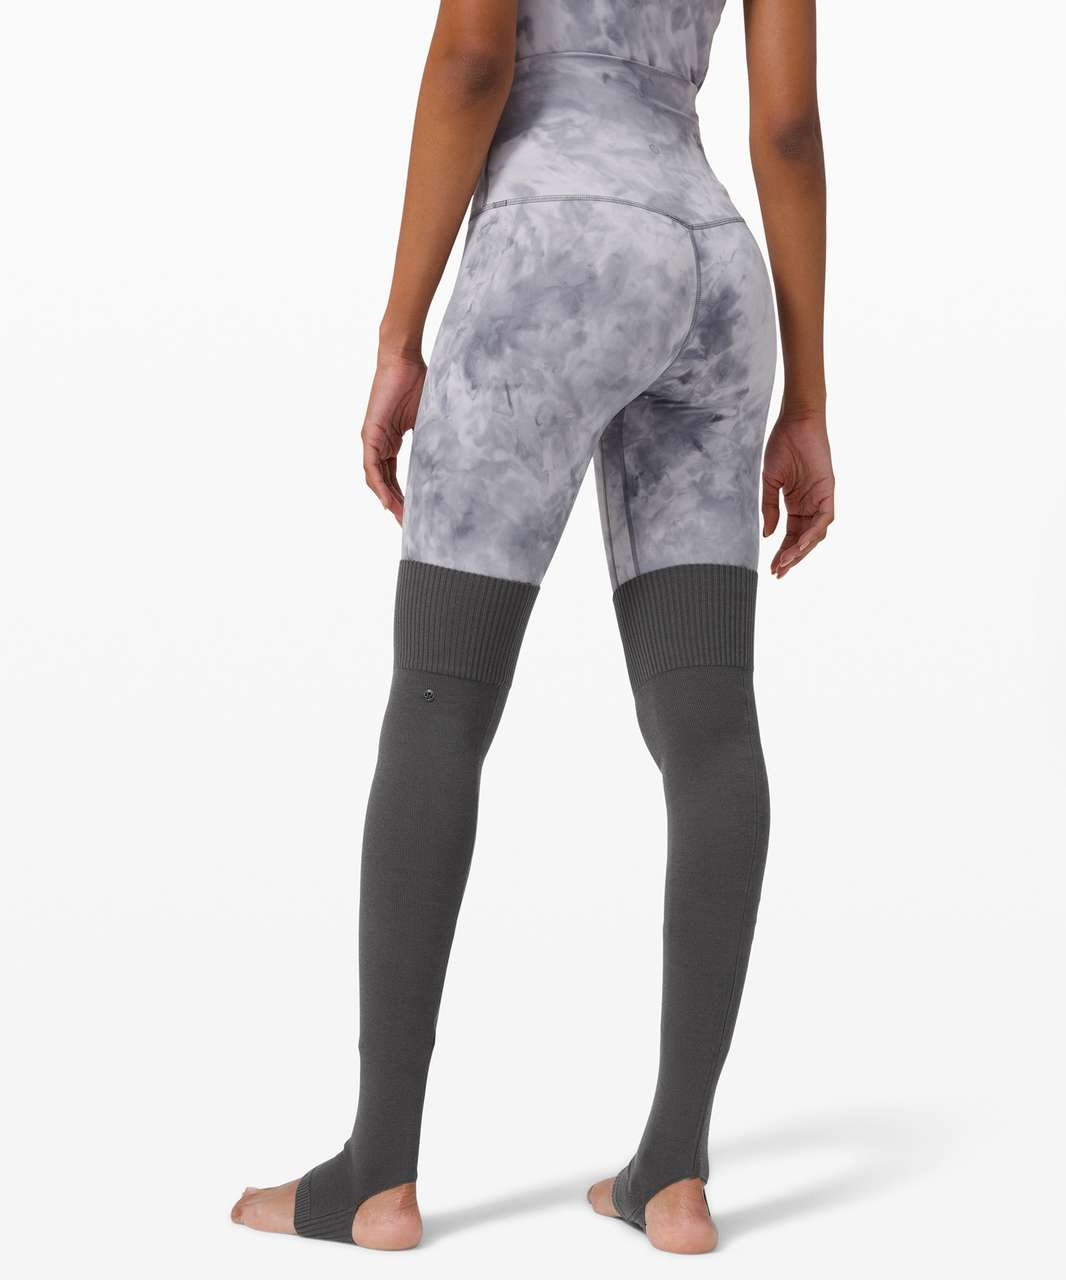 Lululemon Evolution Leg Warmer - Graphite Grey